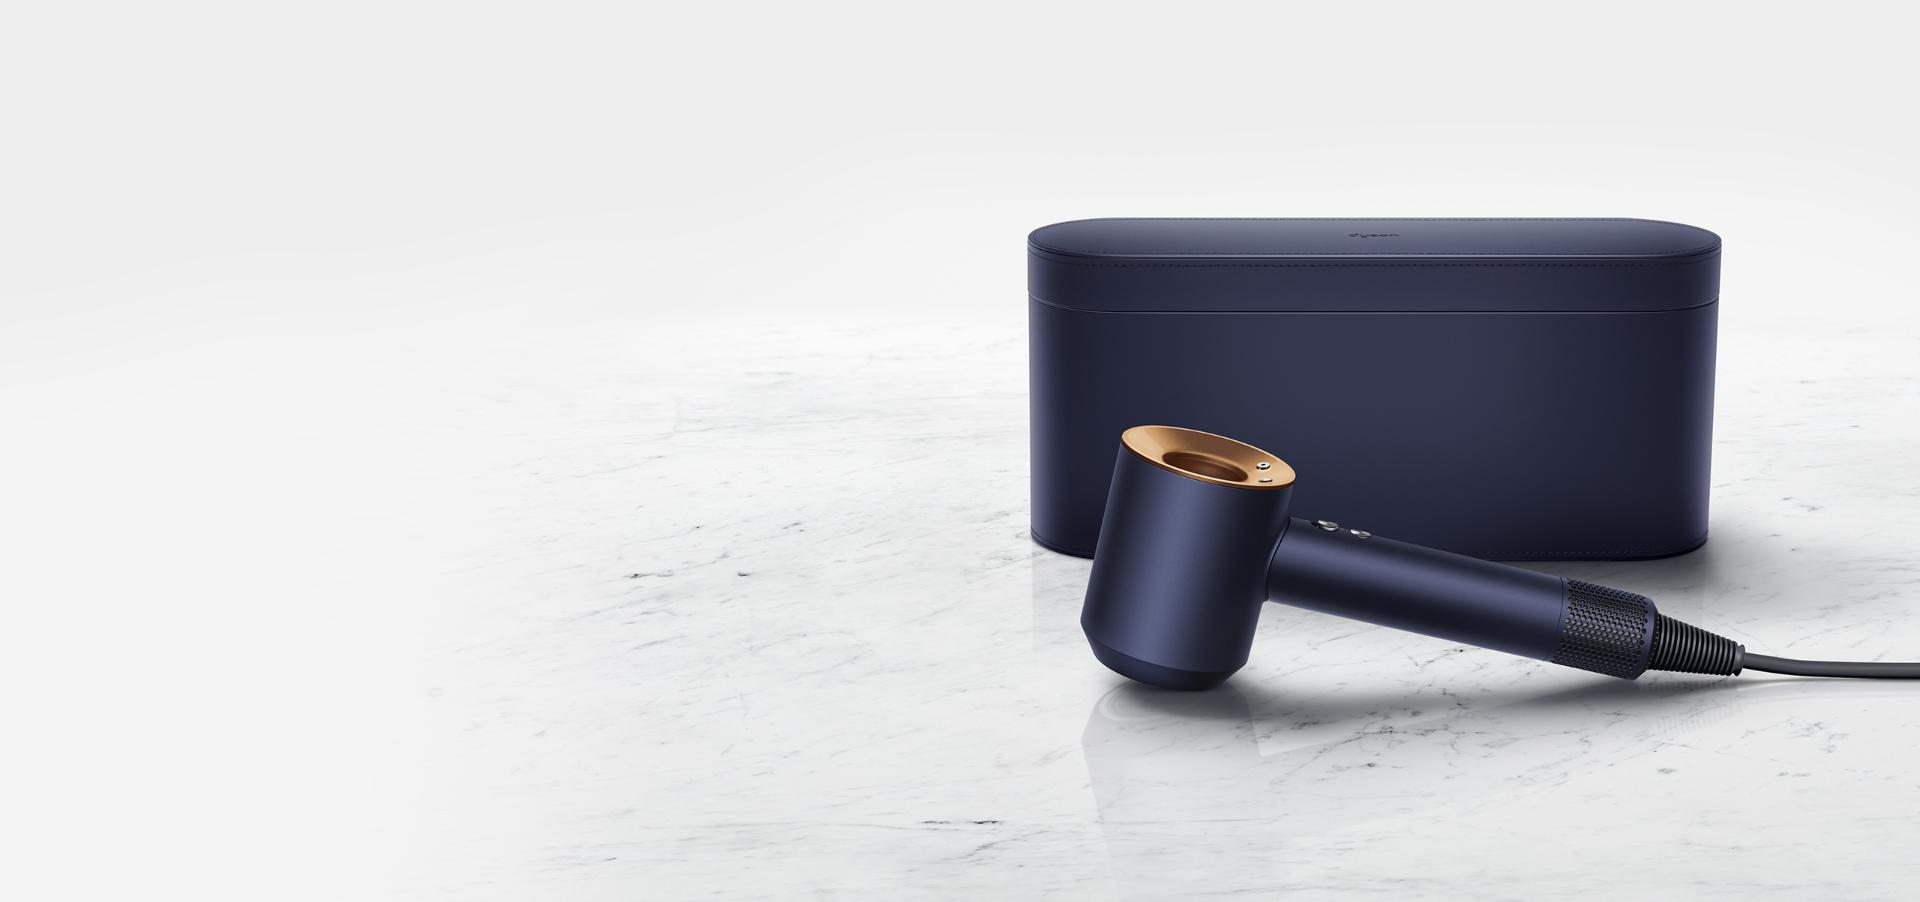 Special edition Dyson Supersonic hair dryer and presentation case